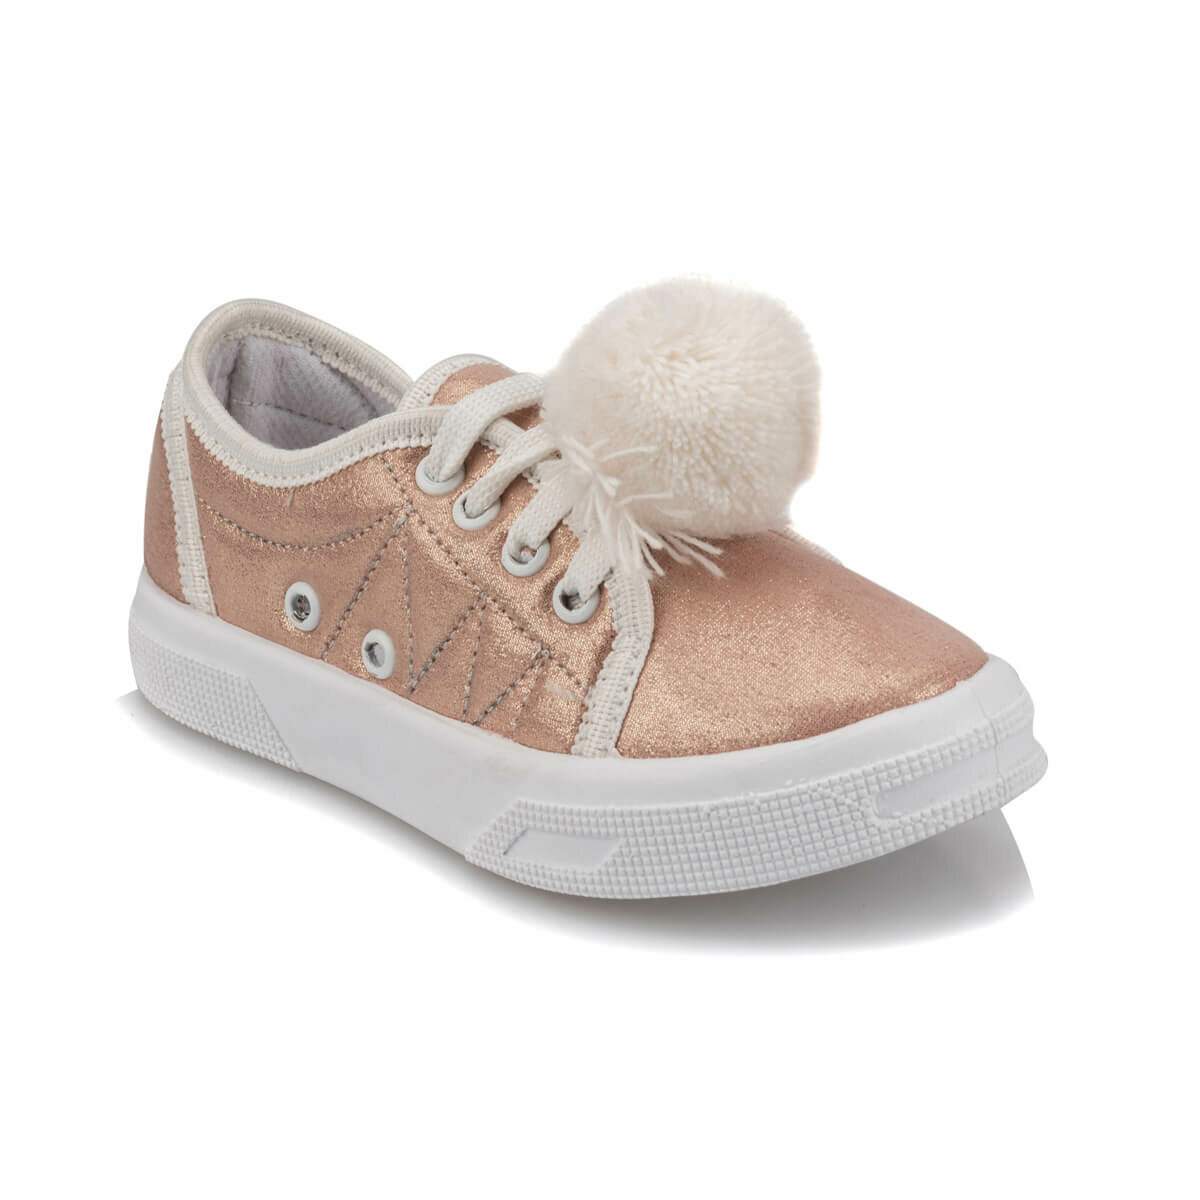 FLO 92.511771.P Powder Female Child Casual Shoes Polaris